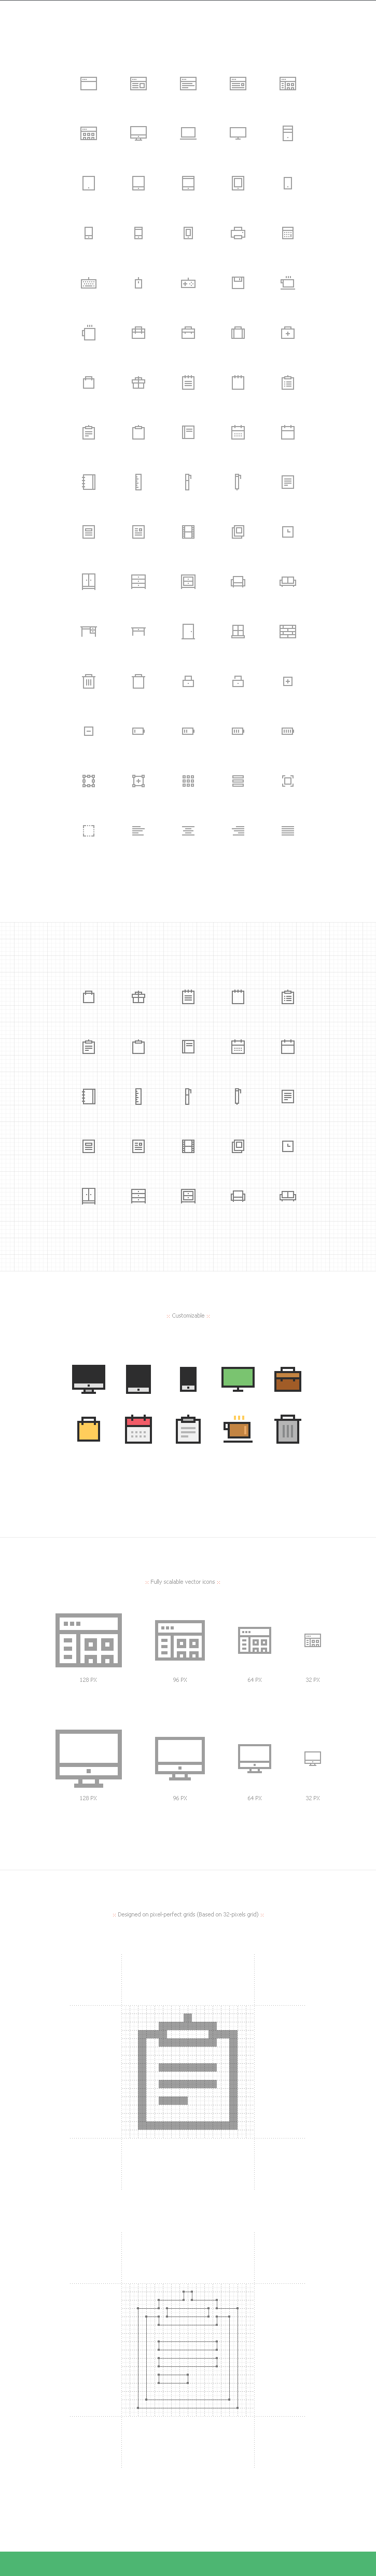 pixelvicon_icon_set_presentation_